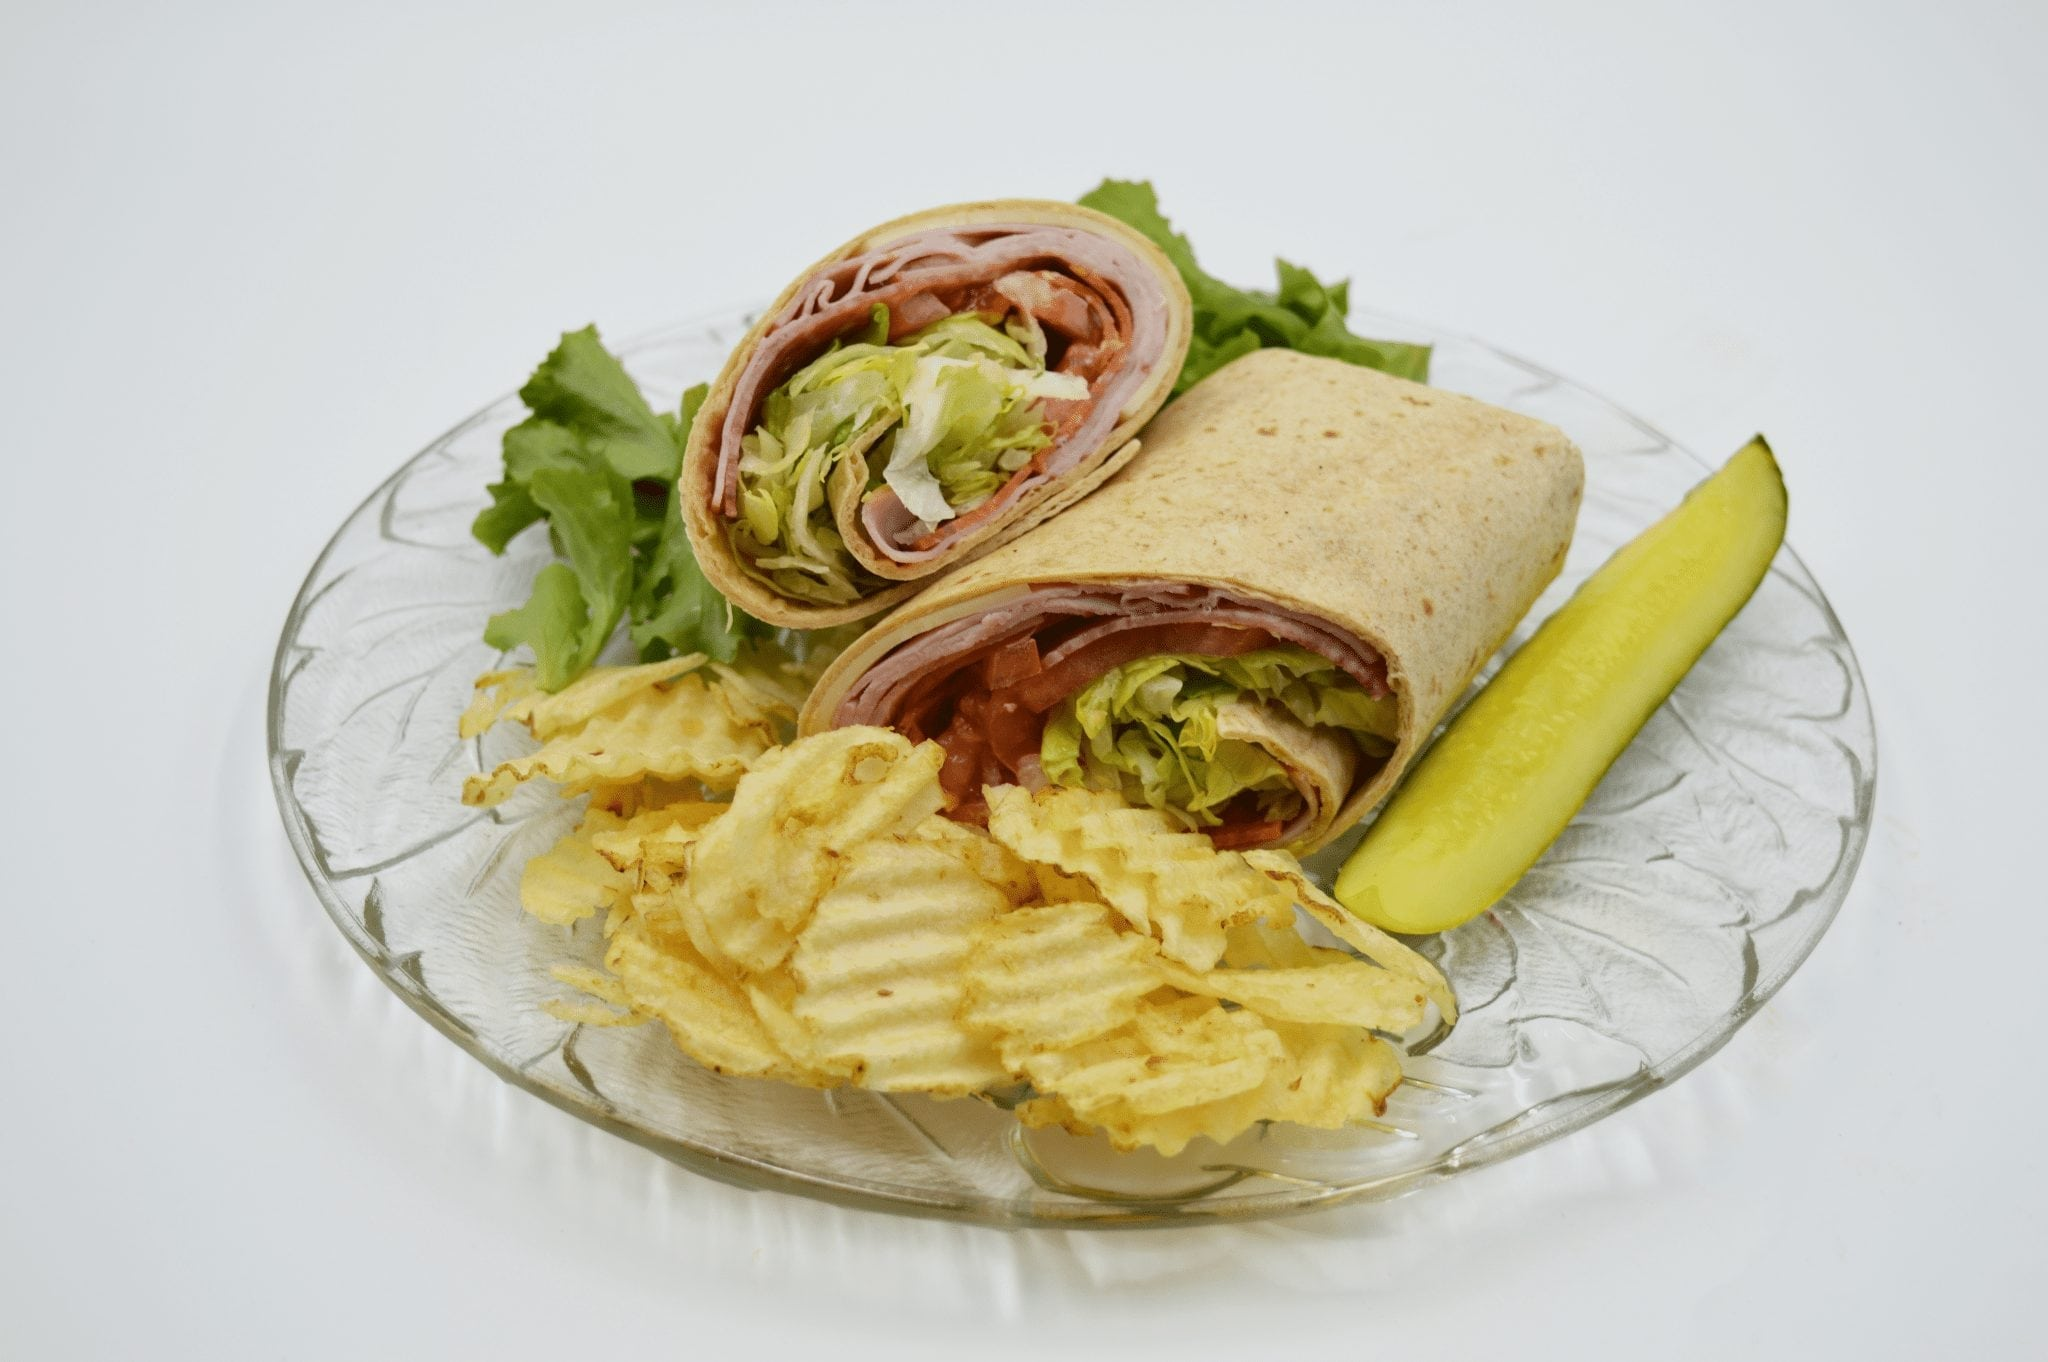 wrap with chips and a pickle spear